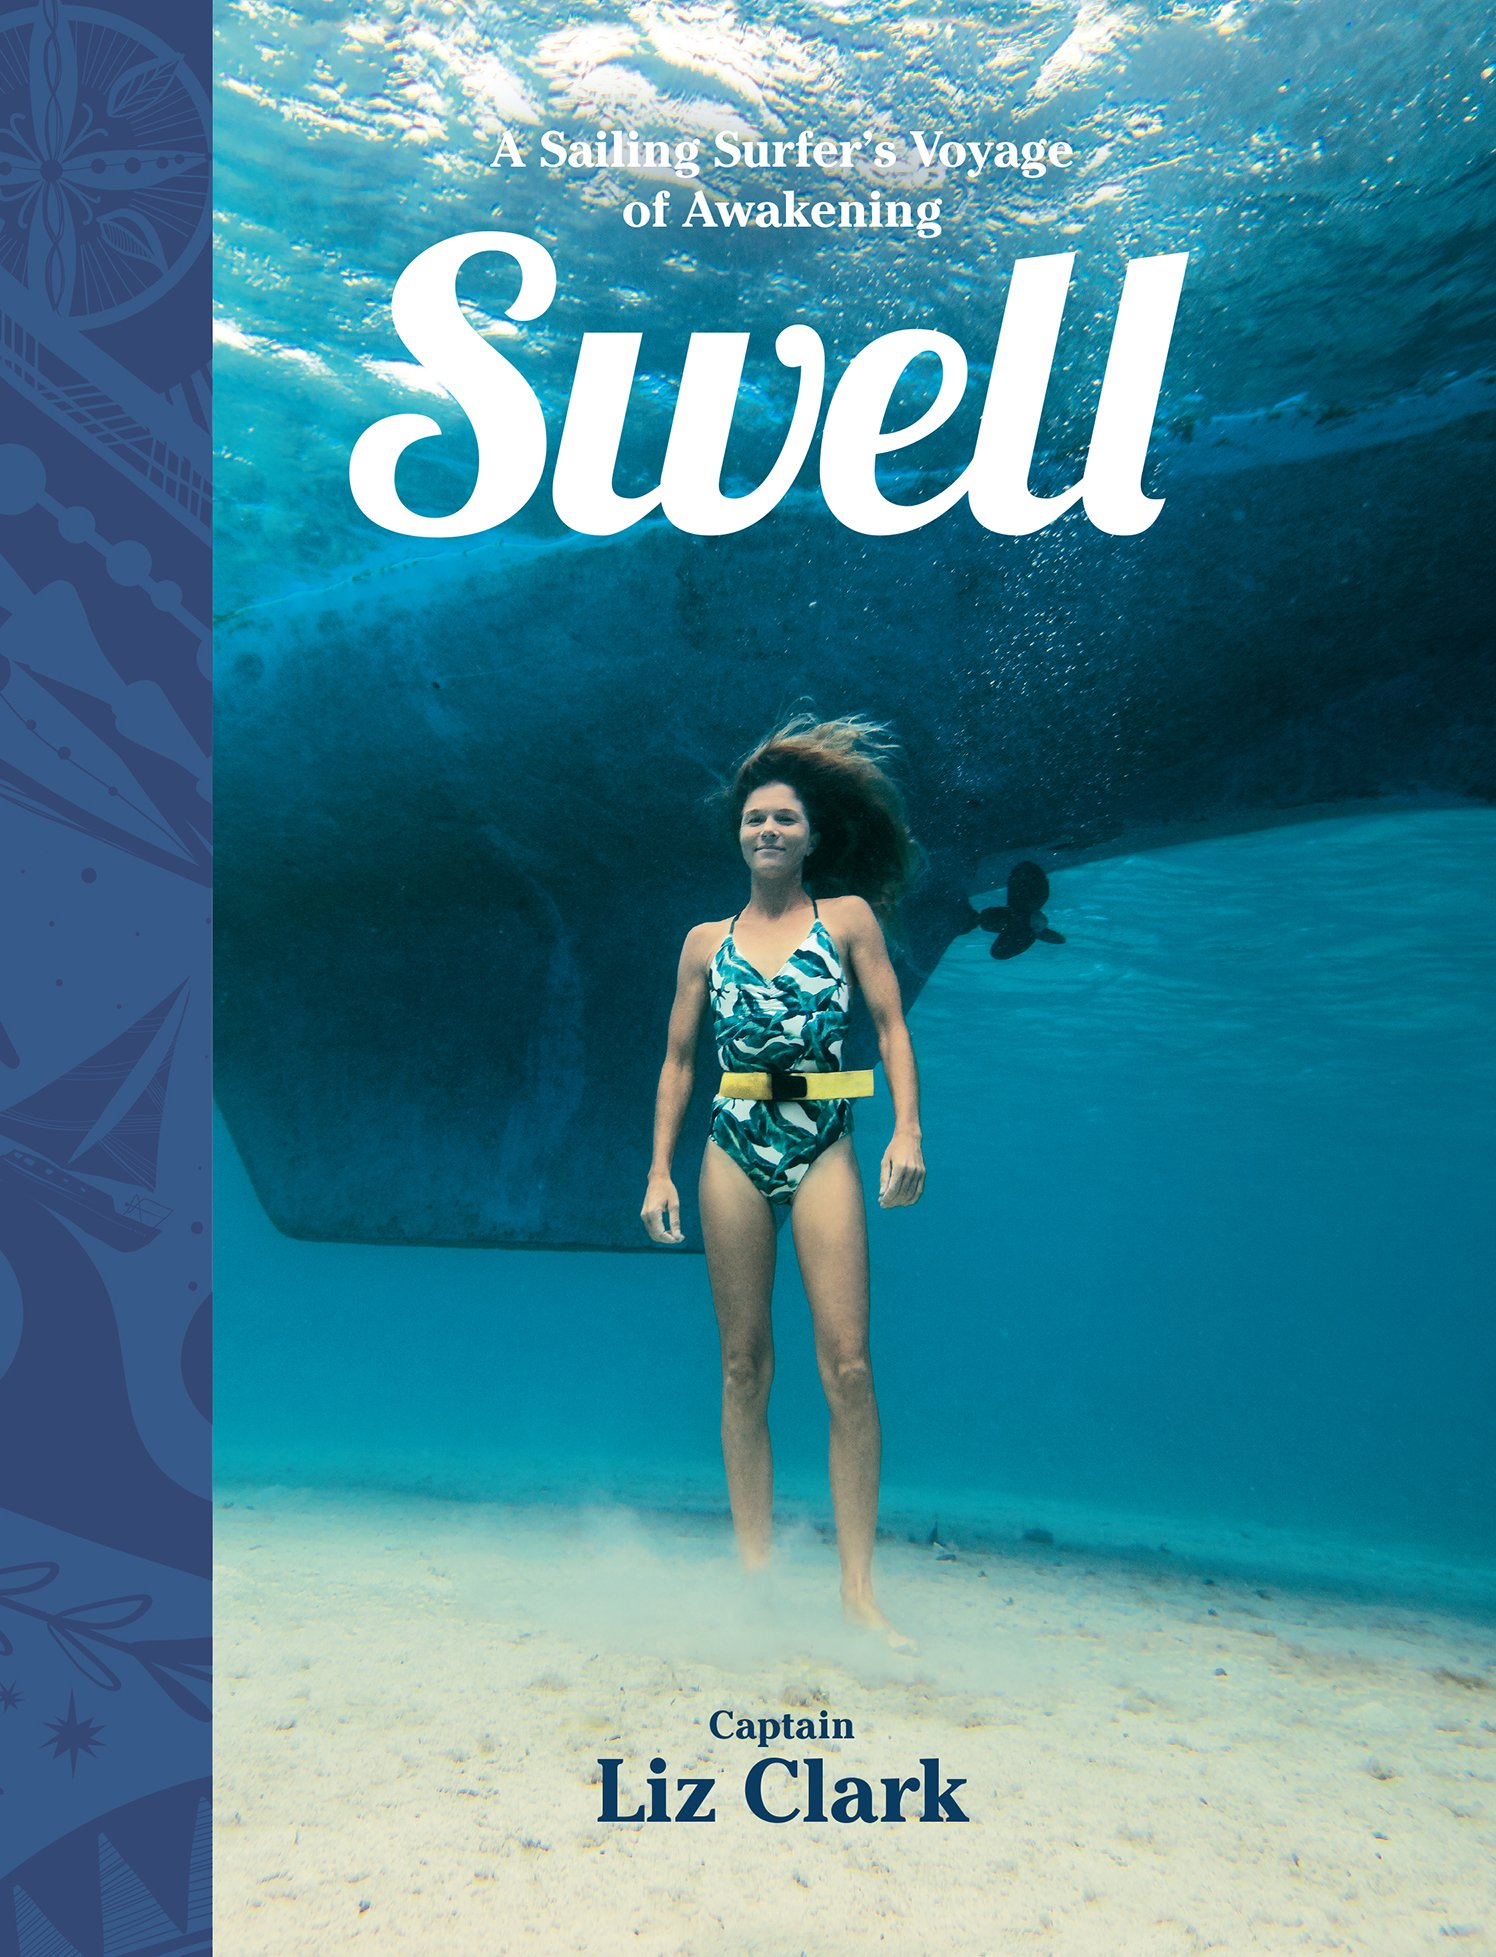 Swell: A Sailing Surfer's Voyage of Awakening by Patagonia